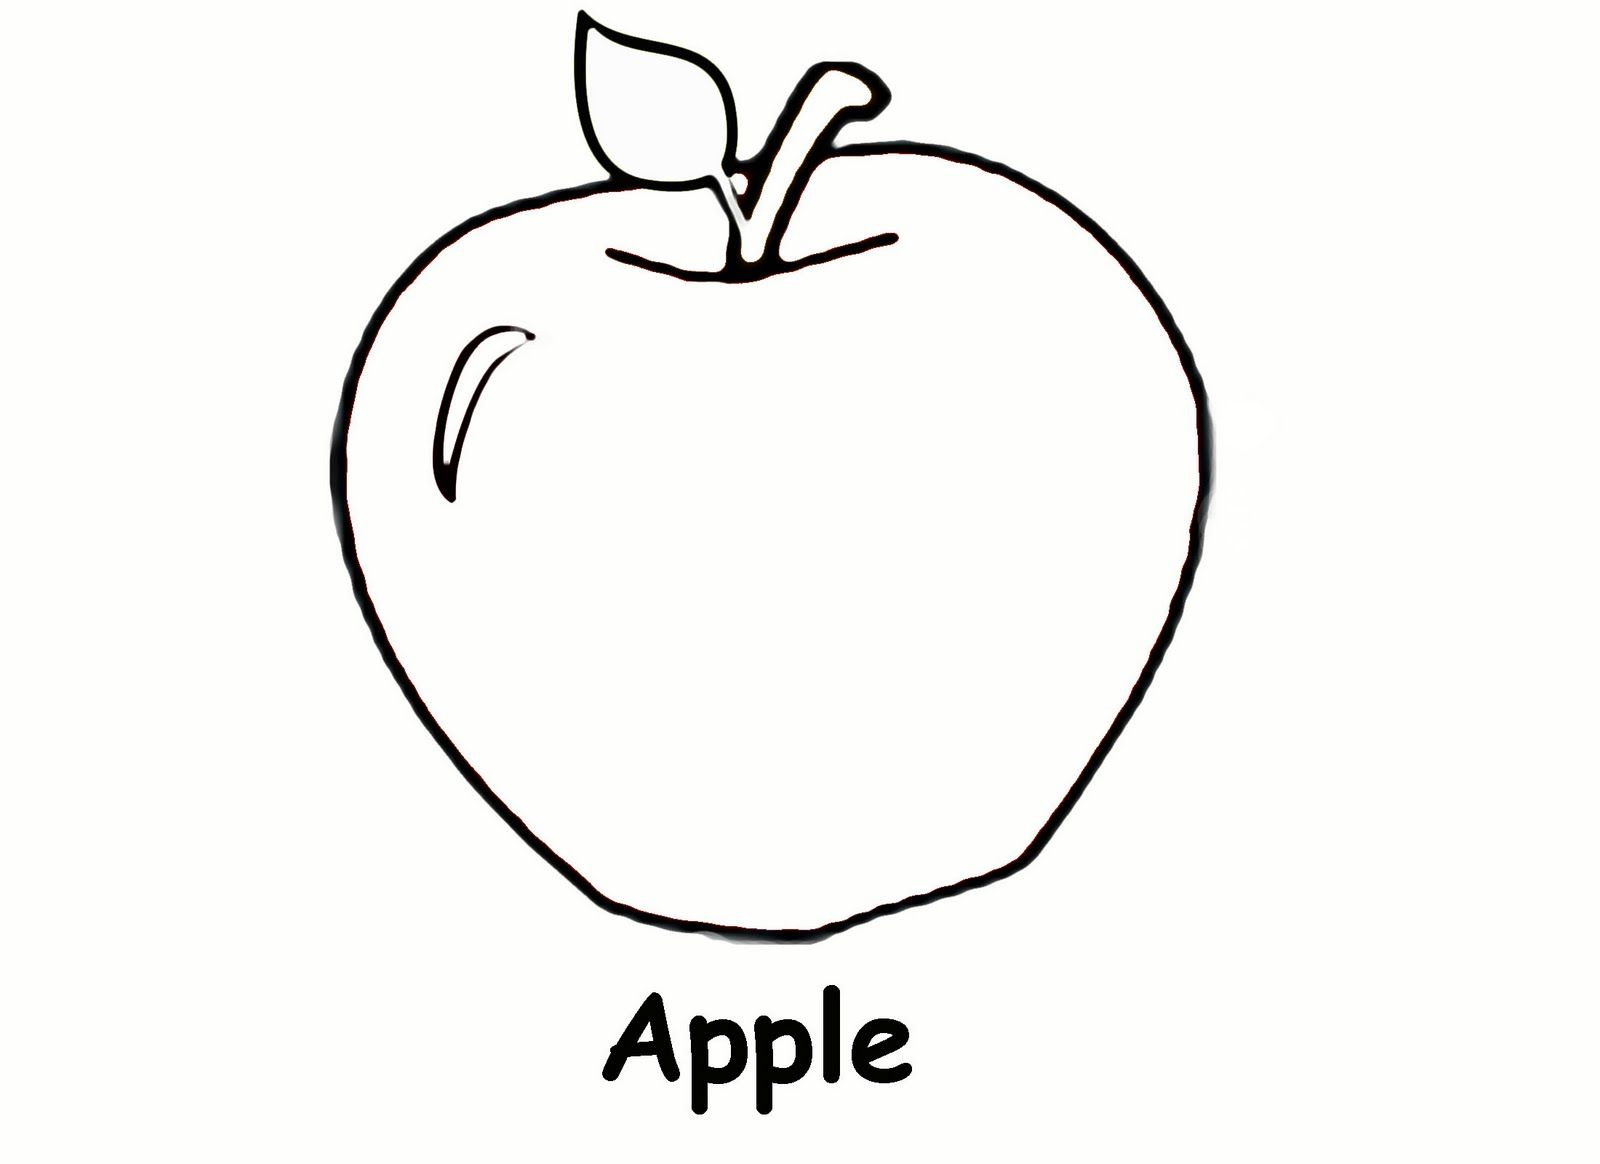 freecoloringbookpages free printable apple coloring pages for kids - Printable Coloring Pages For Toddlers